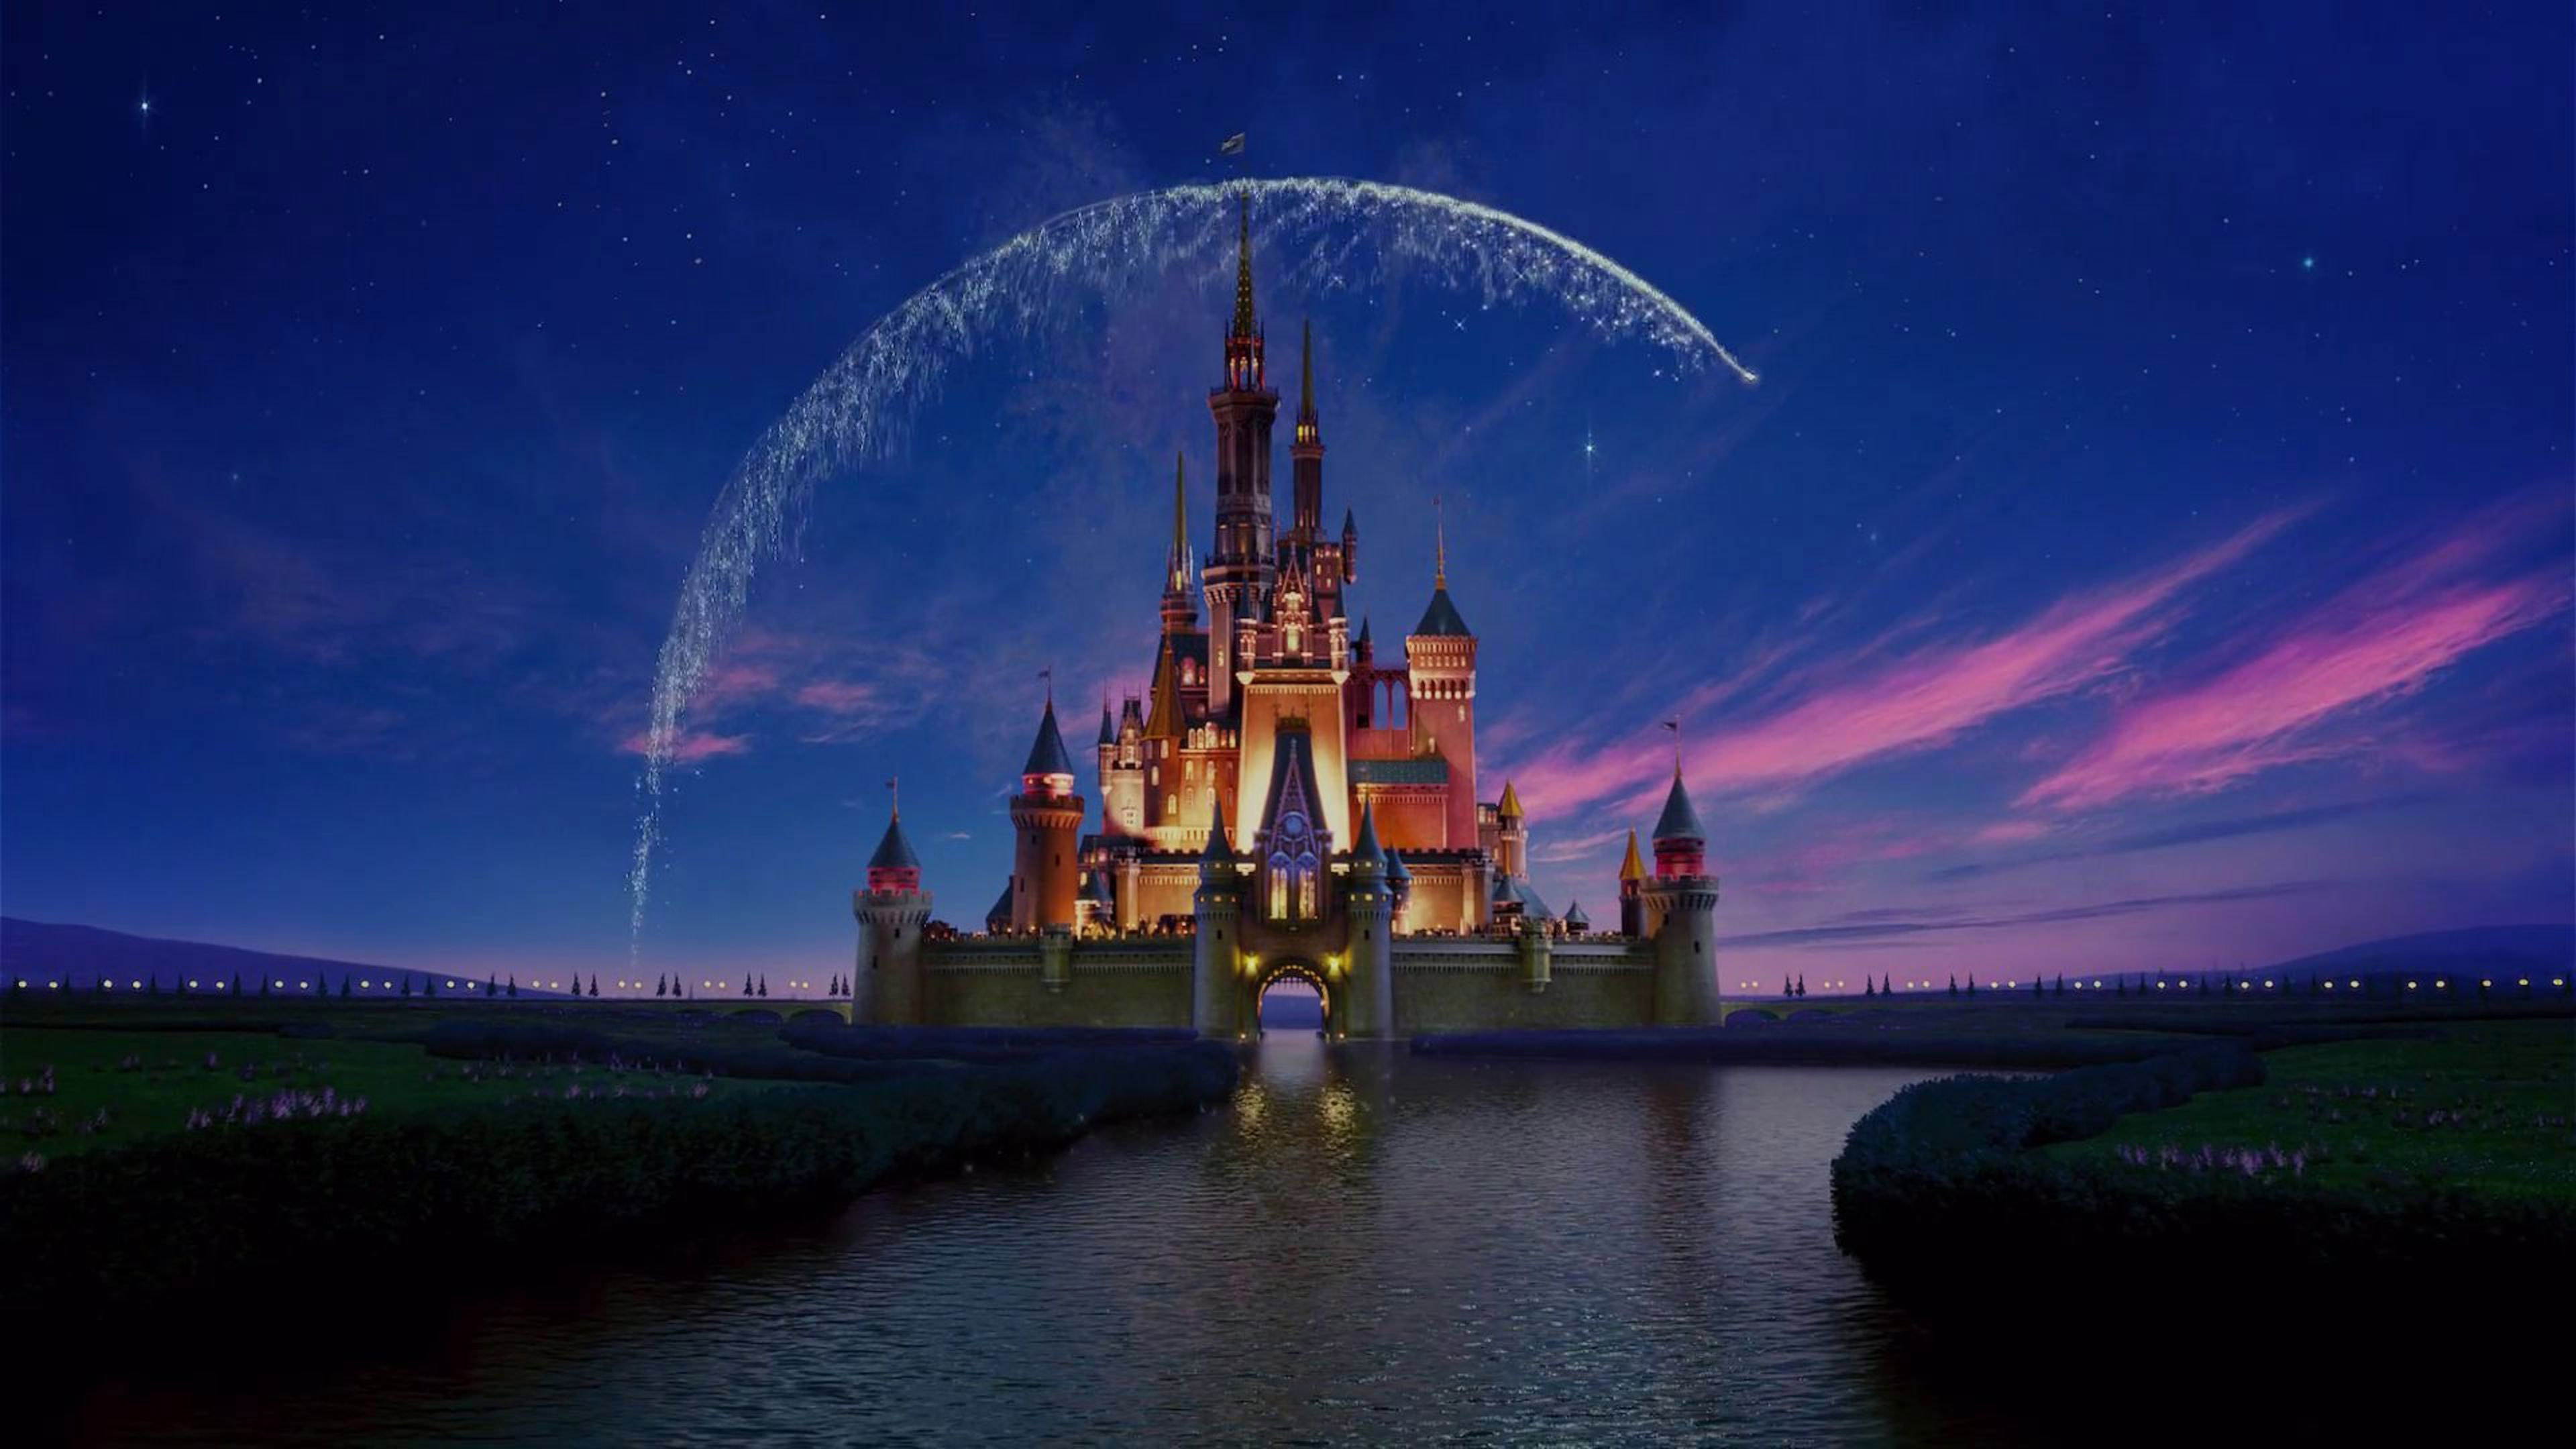 Disney images Disney HD wallpaper and background photos